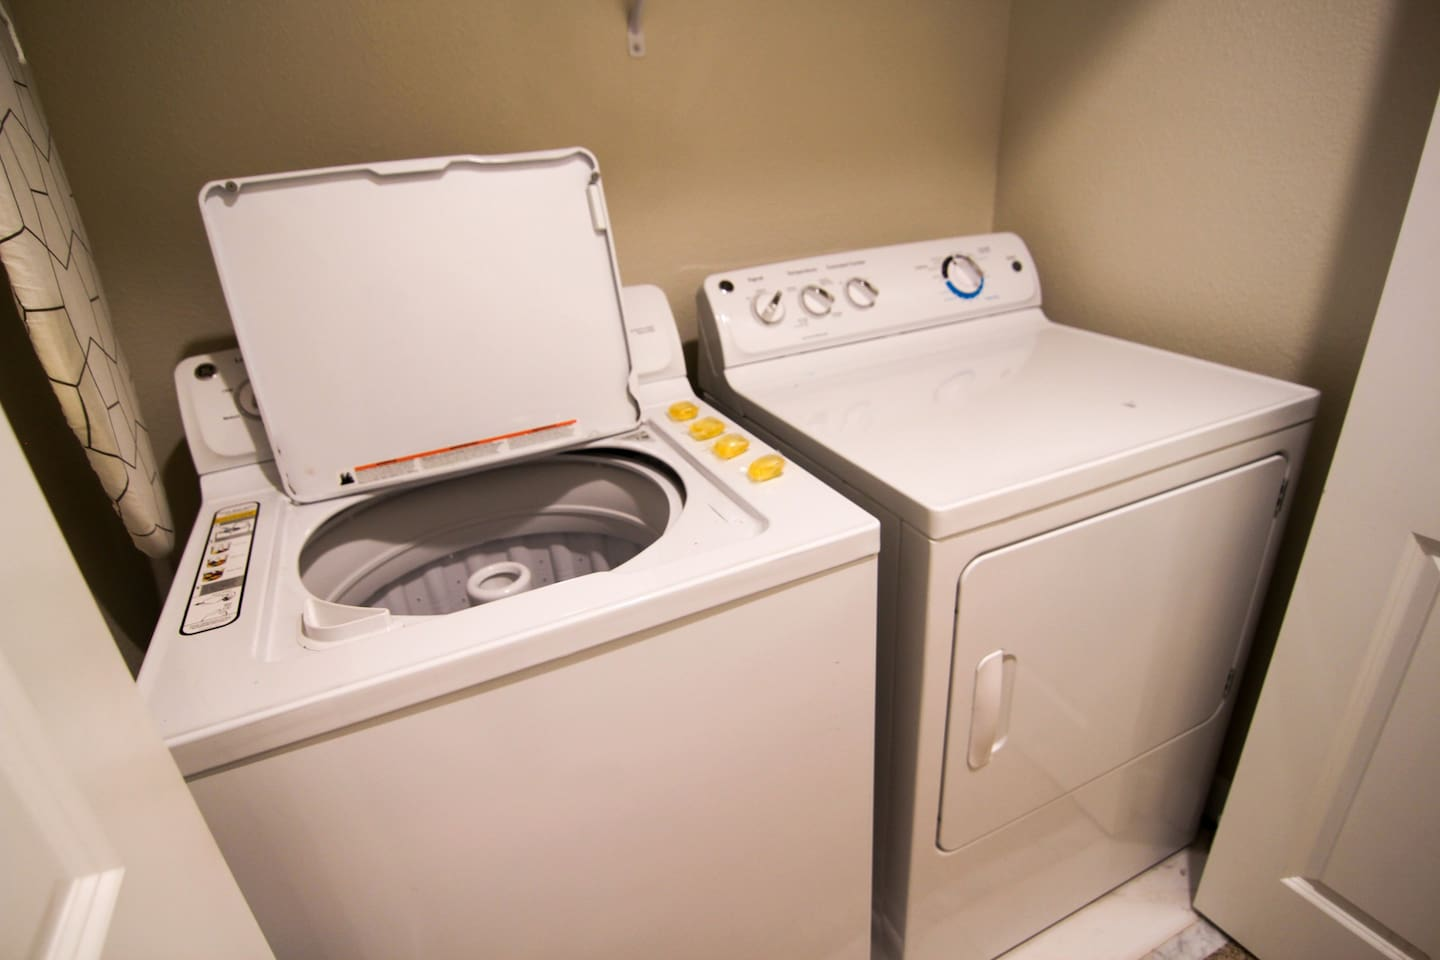 Washer/Drier in the suite.